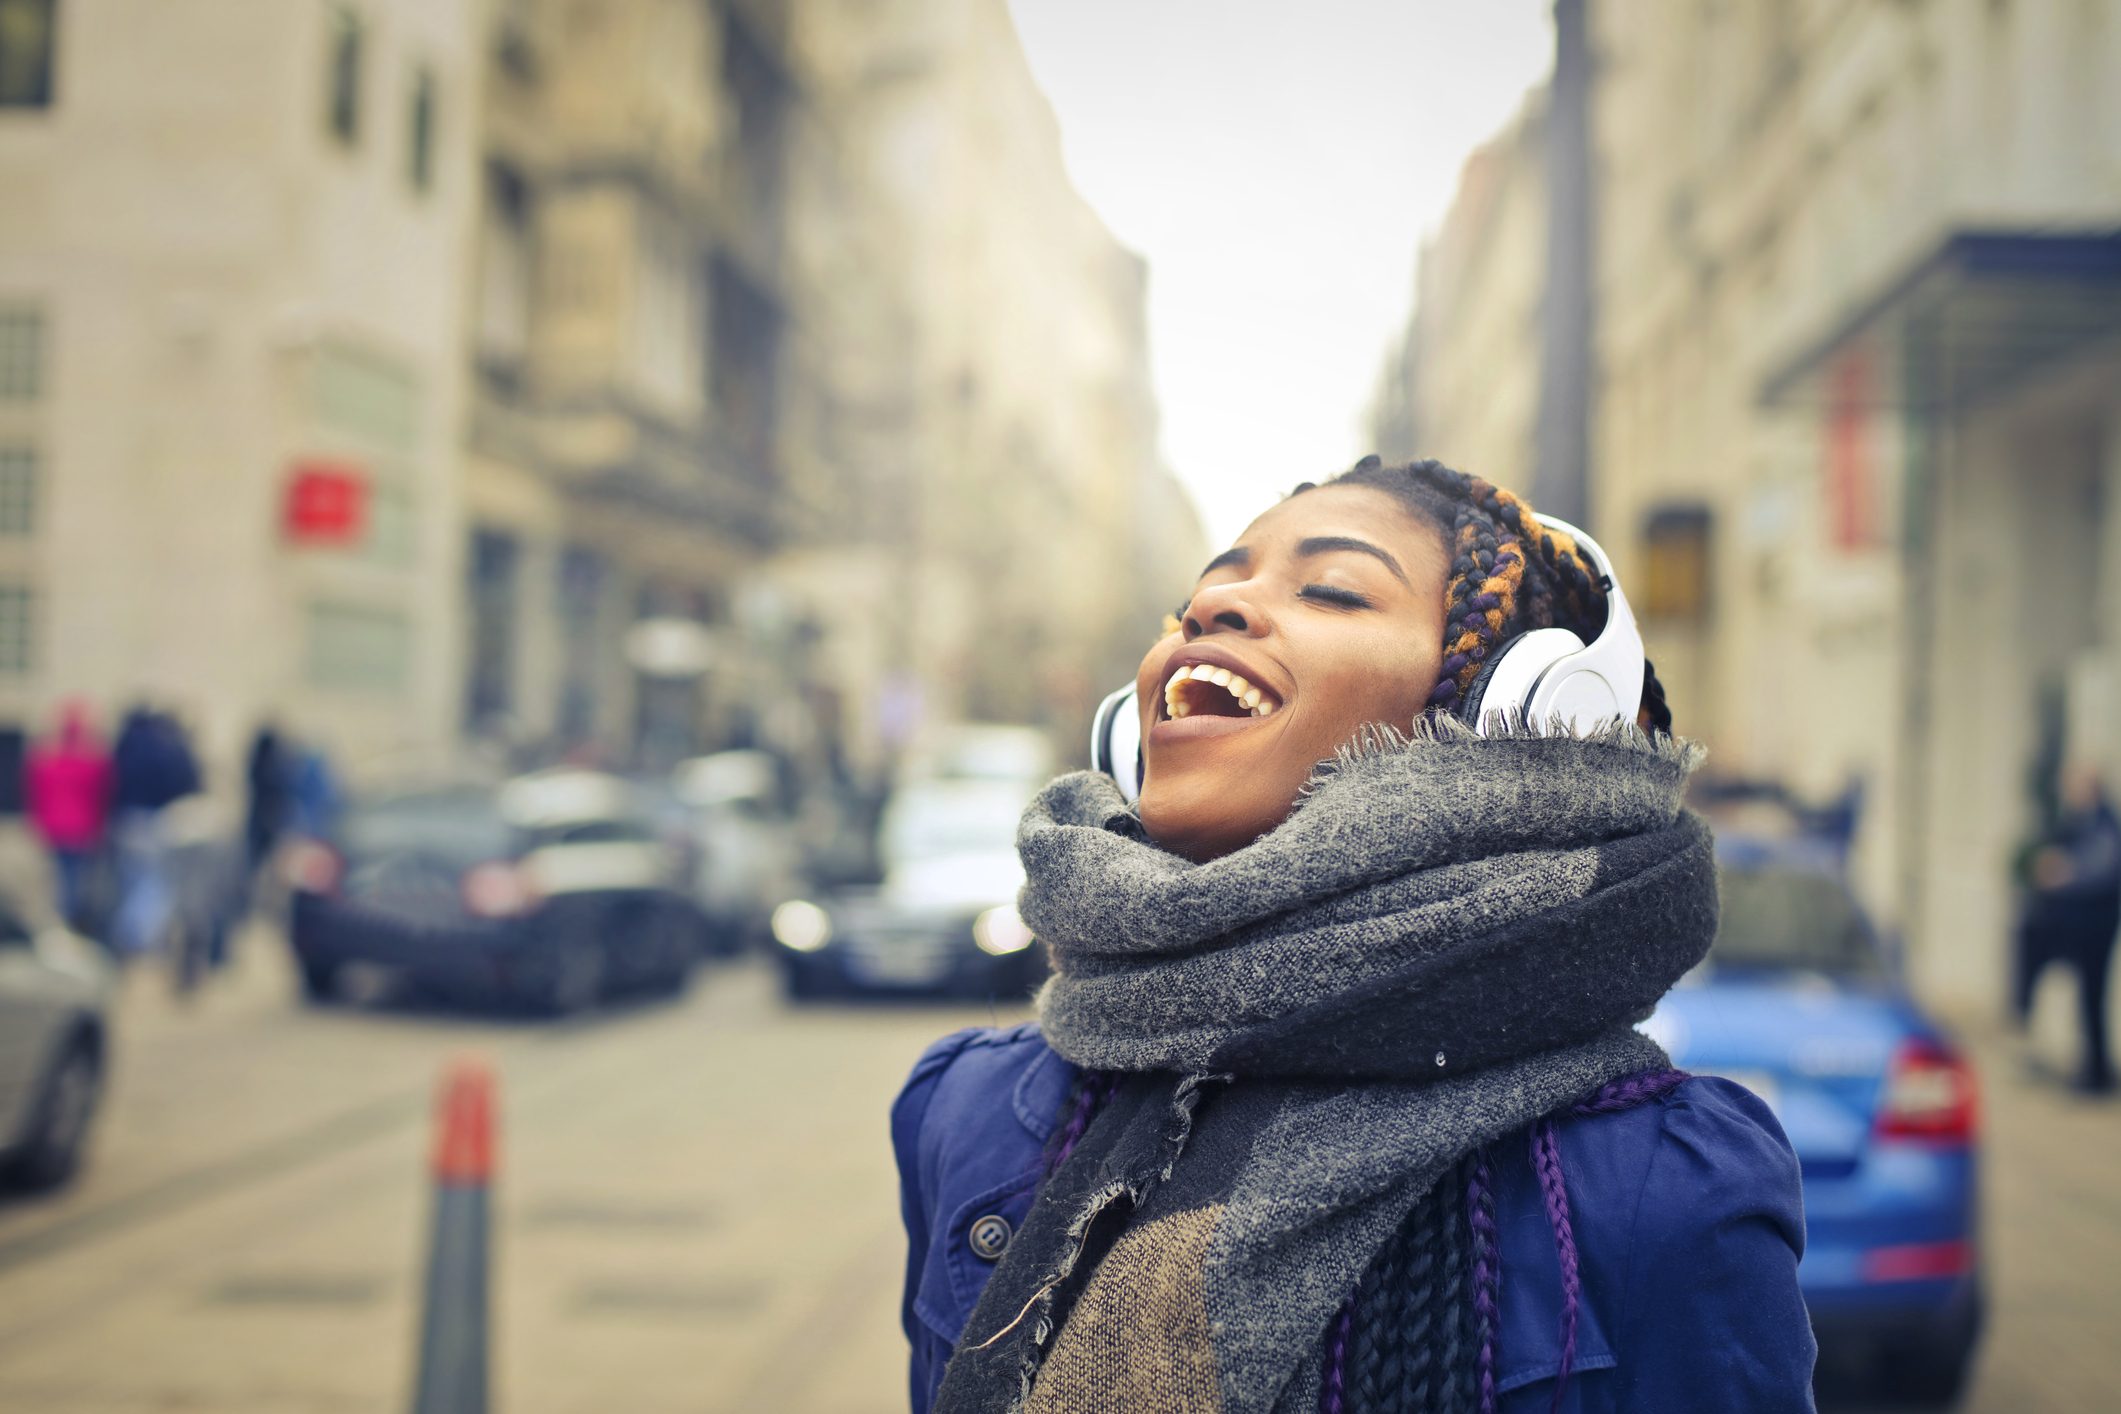 10 Ways To Keep Your Spirits High... Even In The Depths Of Winter